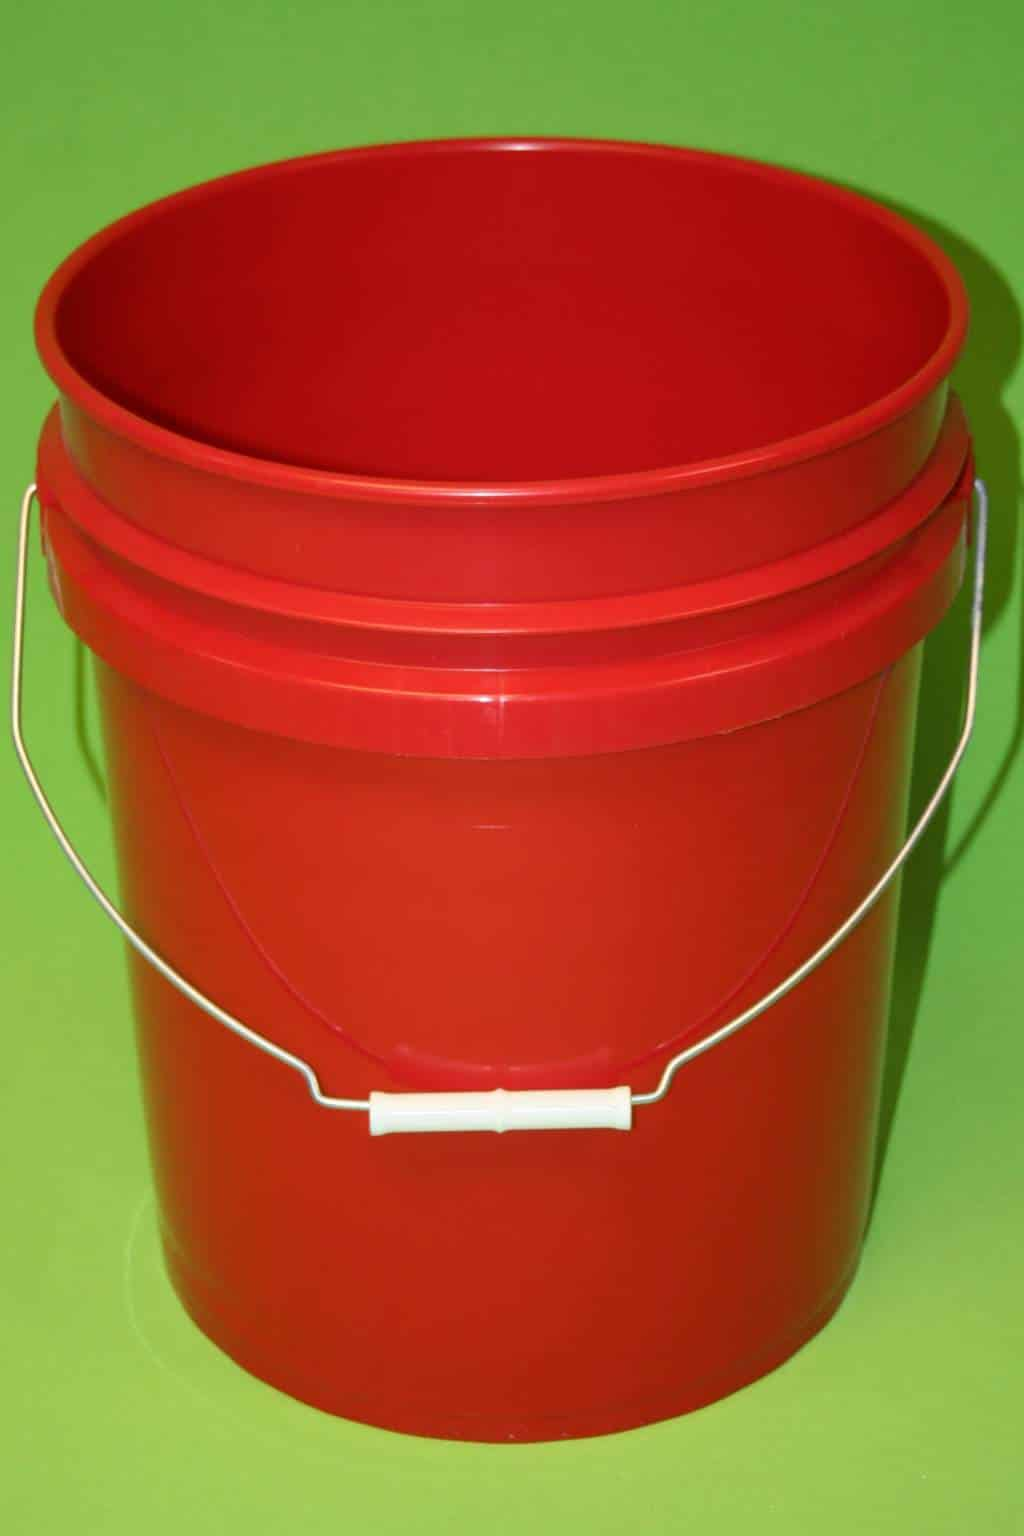 Red 5 Gallon Bucket - Animal Equipment by Stoney